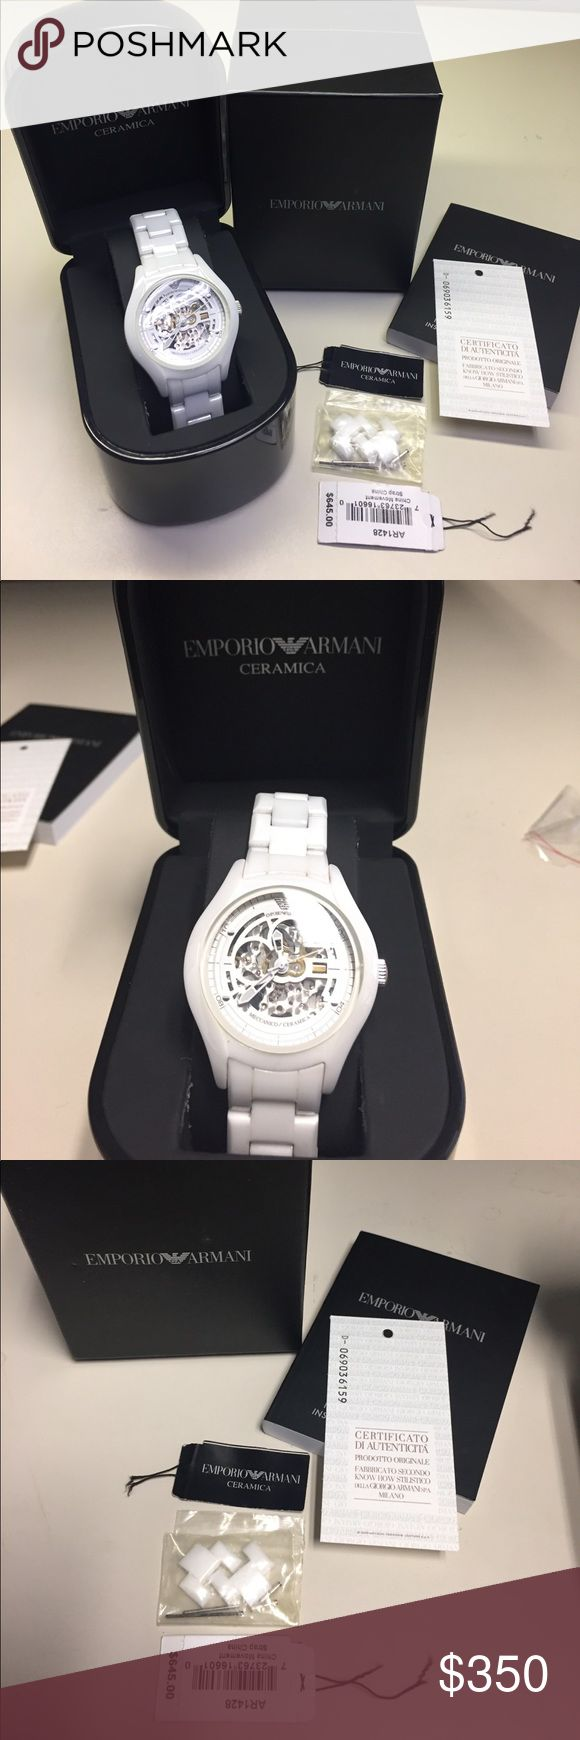 Authentic Emporio Armani ceramics watch. Authentic Emporio Armani Watch ceramic wrist band. White color with open watch movement on back detail. No need for batteries. Automatic movement wind up dial.  Two links were taken out but included with the watch. Emporio Armani Accessories Watches